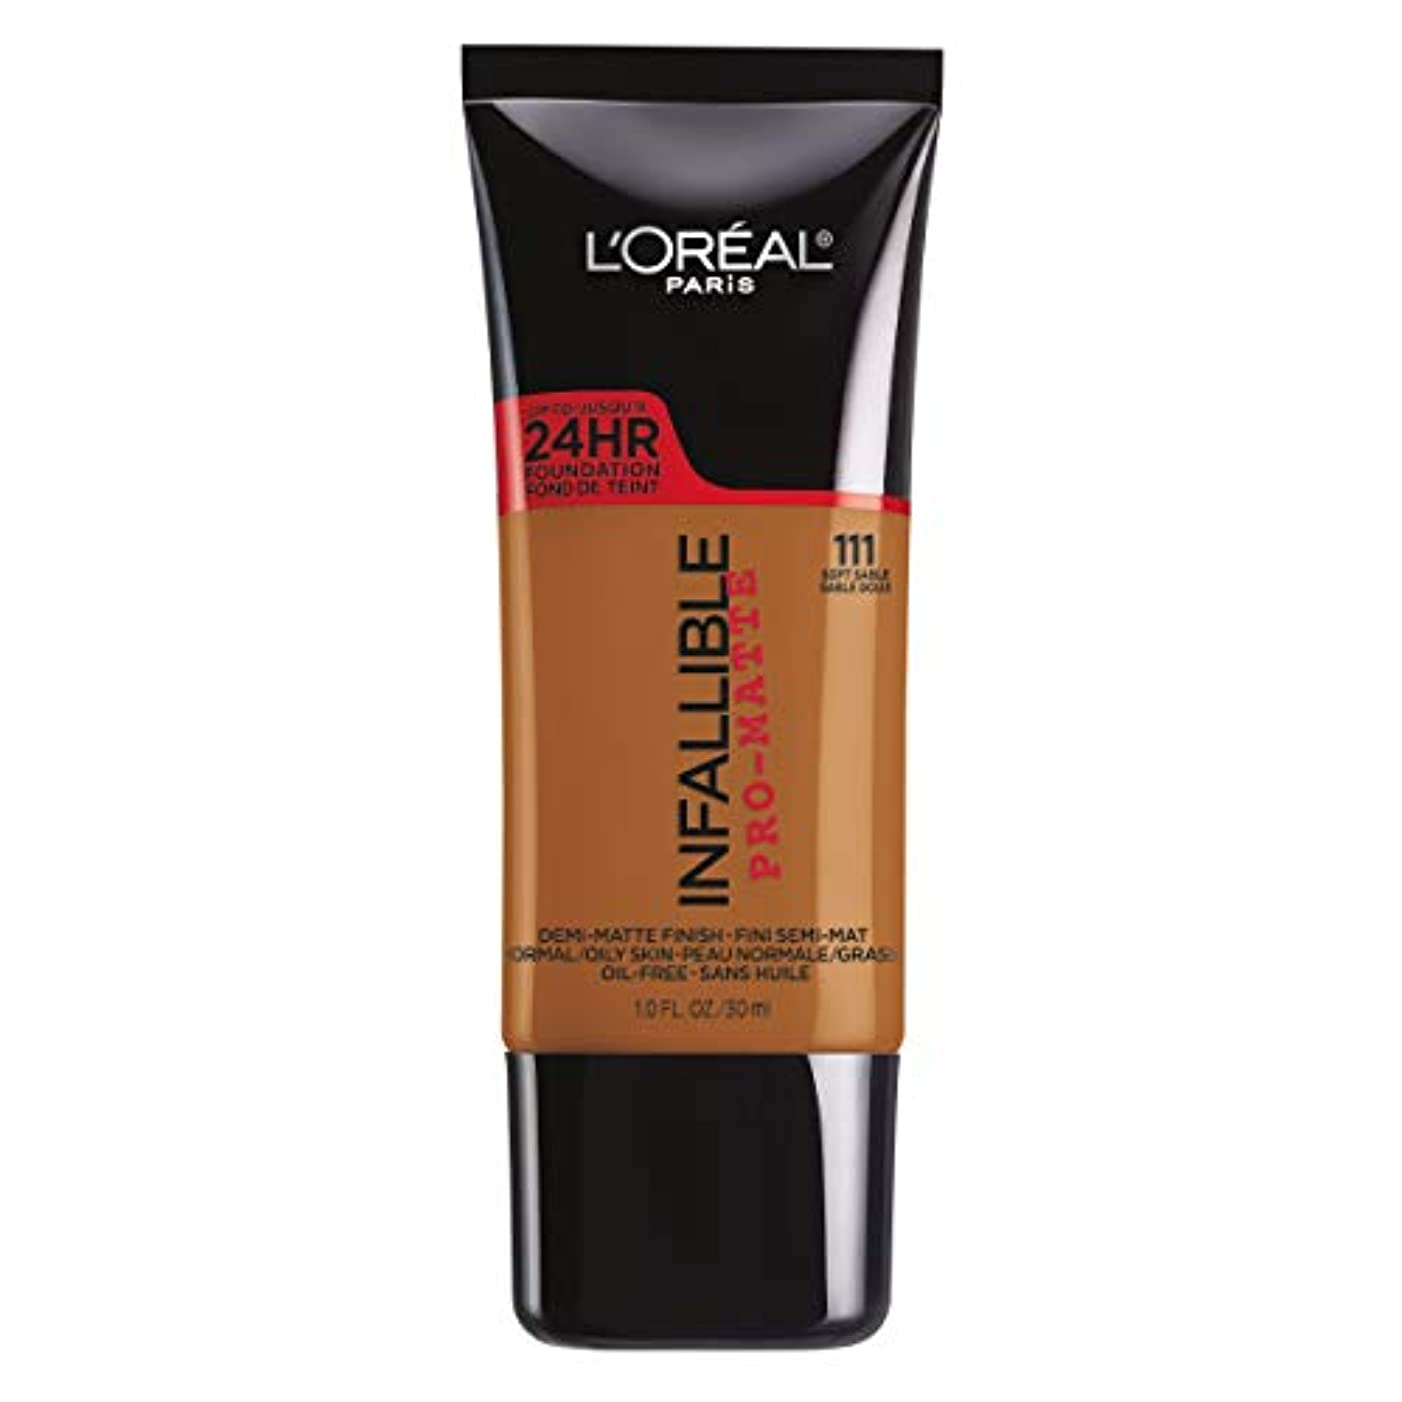 オーロックエレベーターエレベーターL'Oreal Paris Infallible Pro-Matte Foundation Makeup, 111 Soft Sable, 1 fl. oz[並行輸入品]